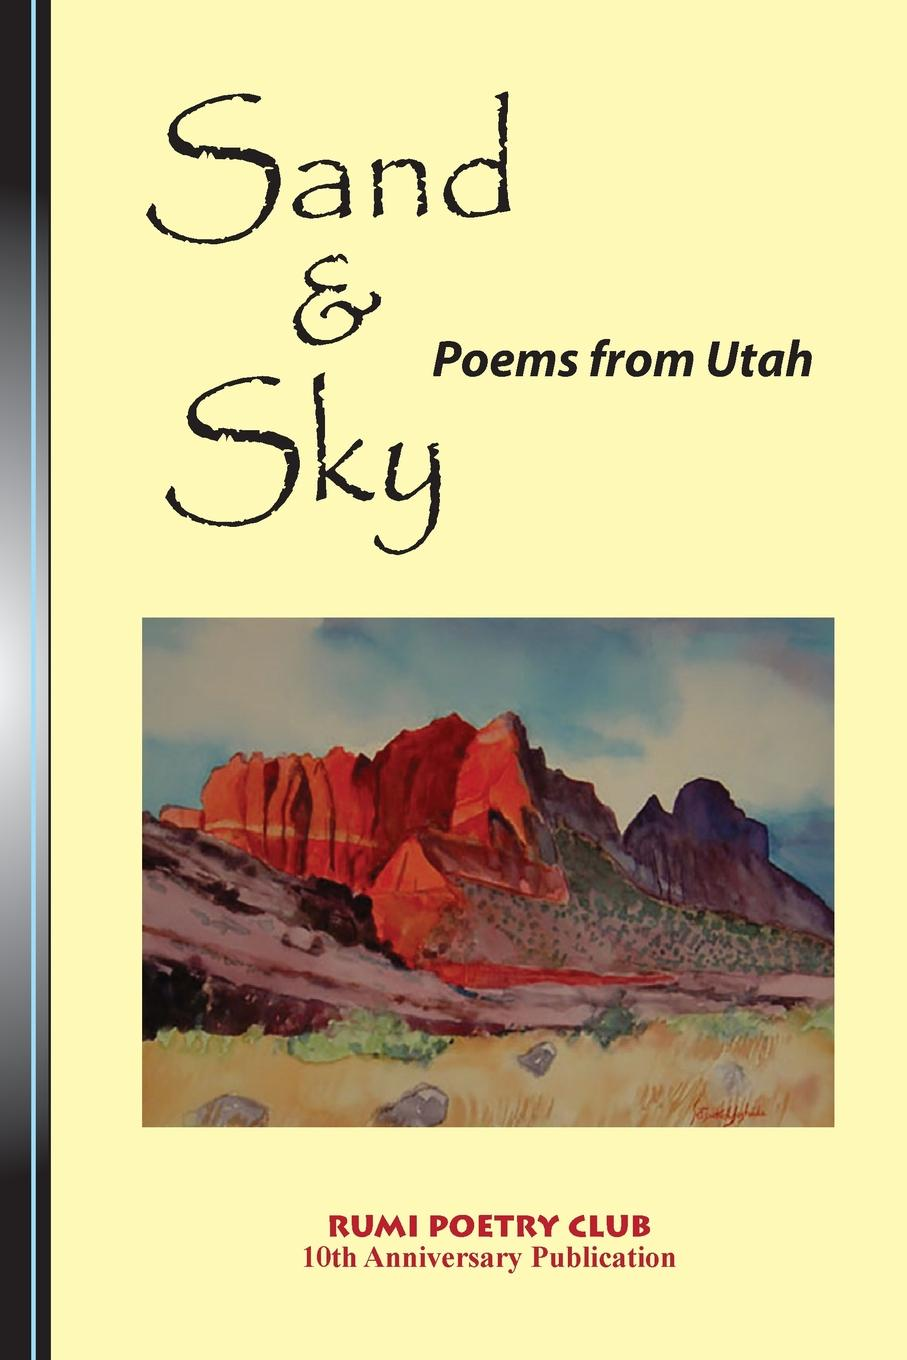 Rumi Poetry Club Rumi Poetry Club Sand and Sky. Poems from Utah rumi poetry club rumi poetry club sand and sky poems from utah